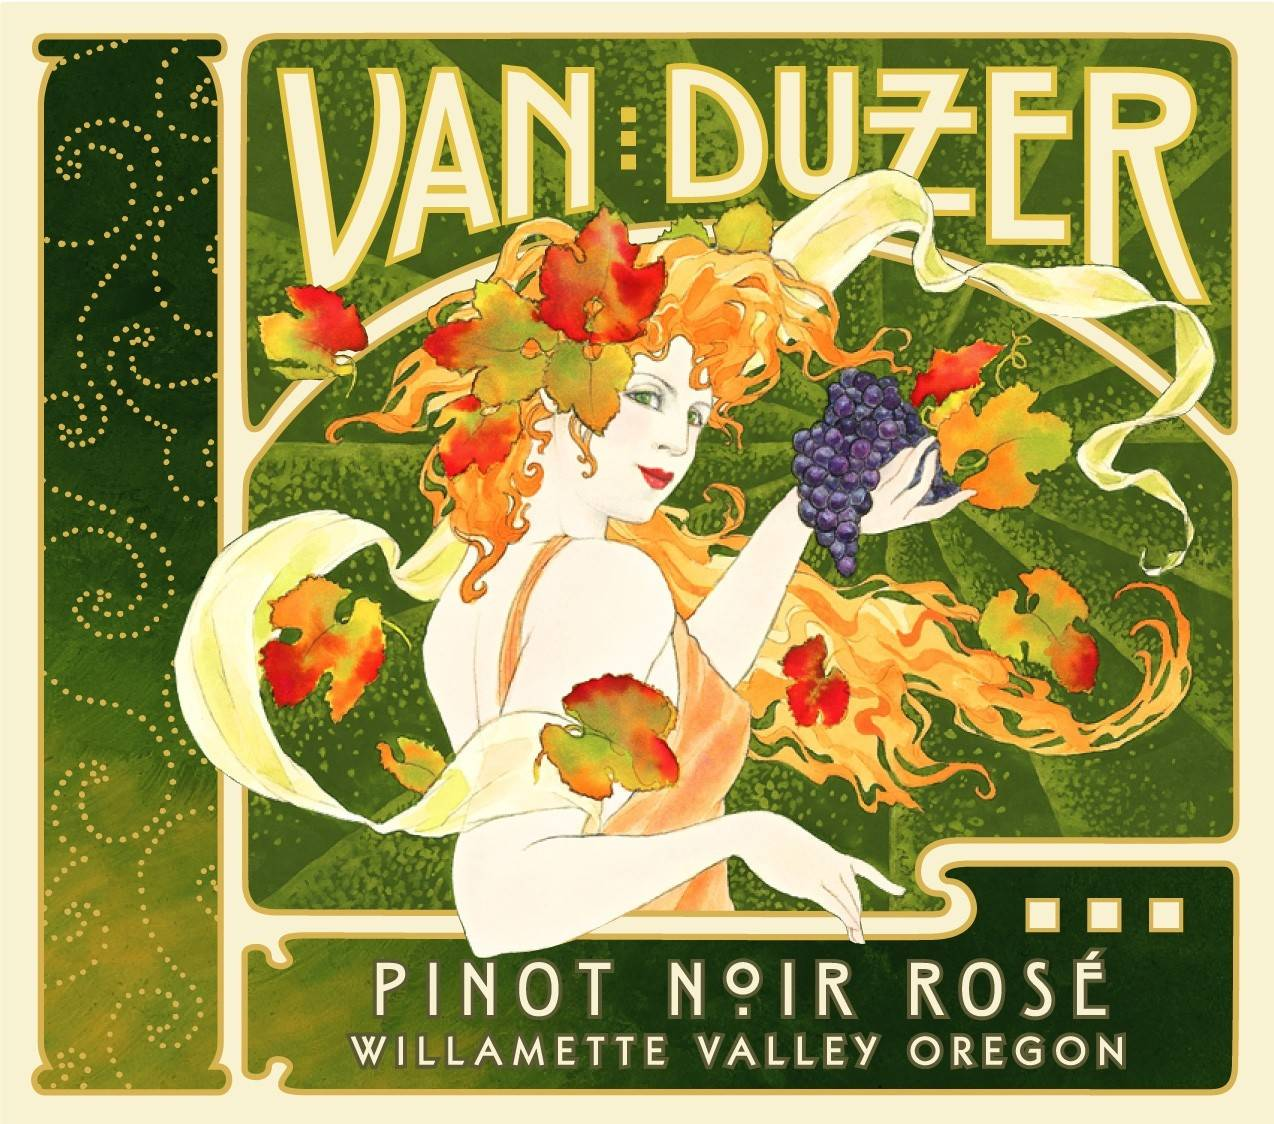 Wine of the Week: Pinot Noir RoseVan DuzerWillamette Valley, Oregon2013